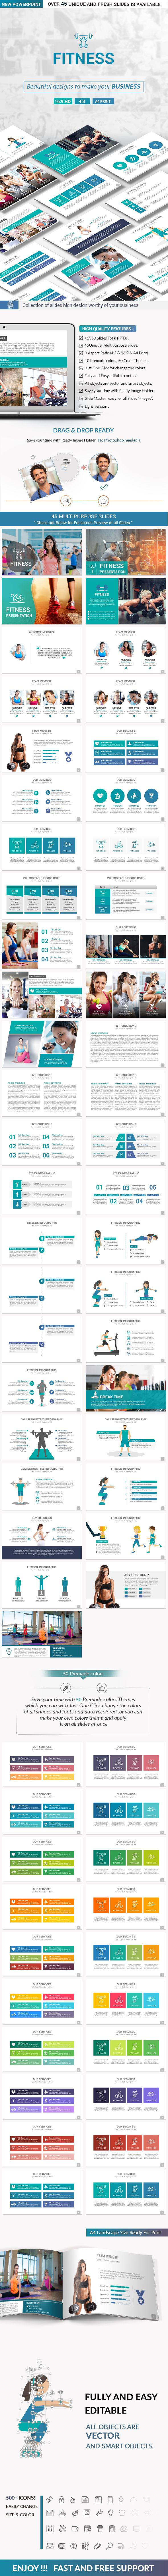 Fitness PowerPoint Presentation Template